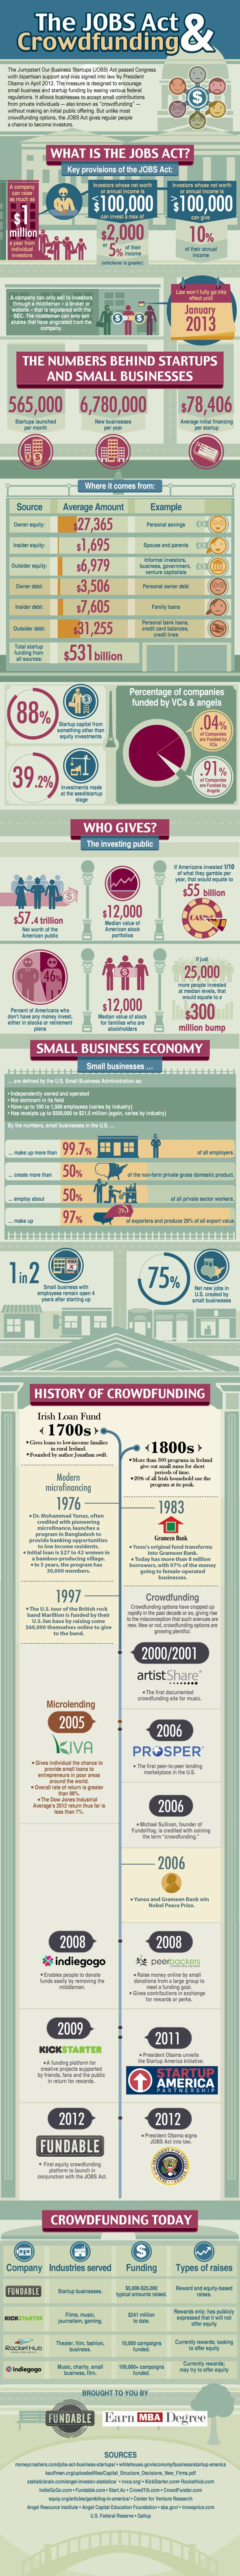 The JOBS Act and the History of Crowdfunding - Fundable, a startup focused on helping other startups acquire capital by crowdfunding, takes a look at the key provisions of the legislation, typical sources of funding and even some interesting milestones in the history of crowdfunding.